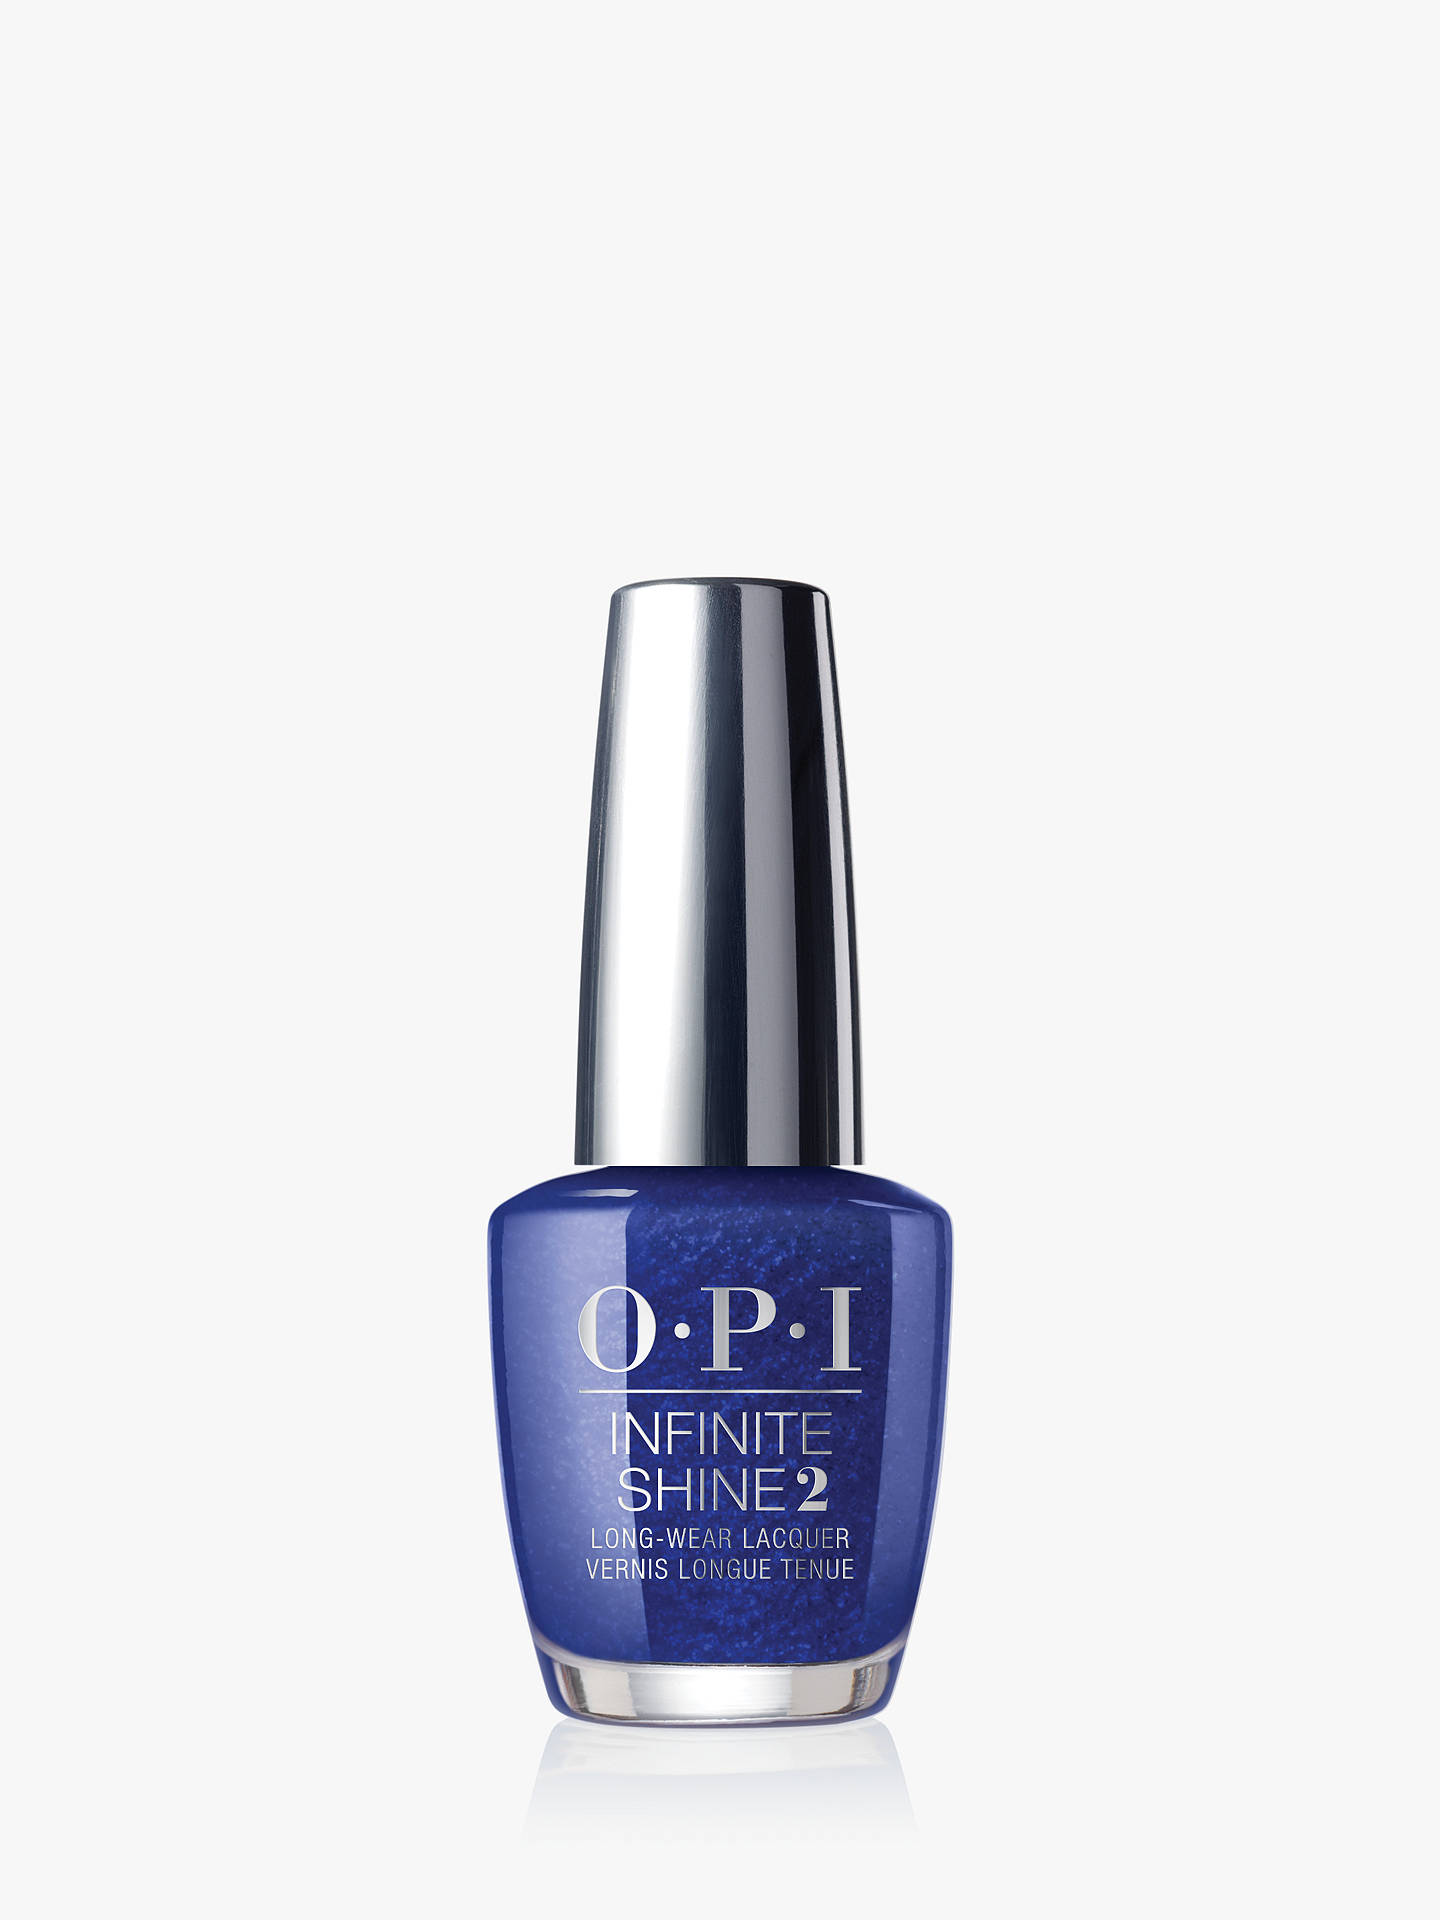 BuyOPI Infinite Shine Nail Lacquer Tokyo Collection, Chopstix And Stones Online at johnlewis.com